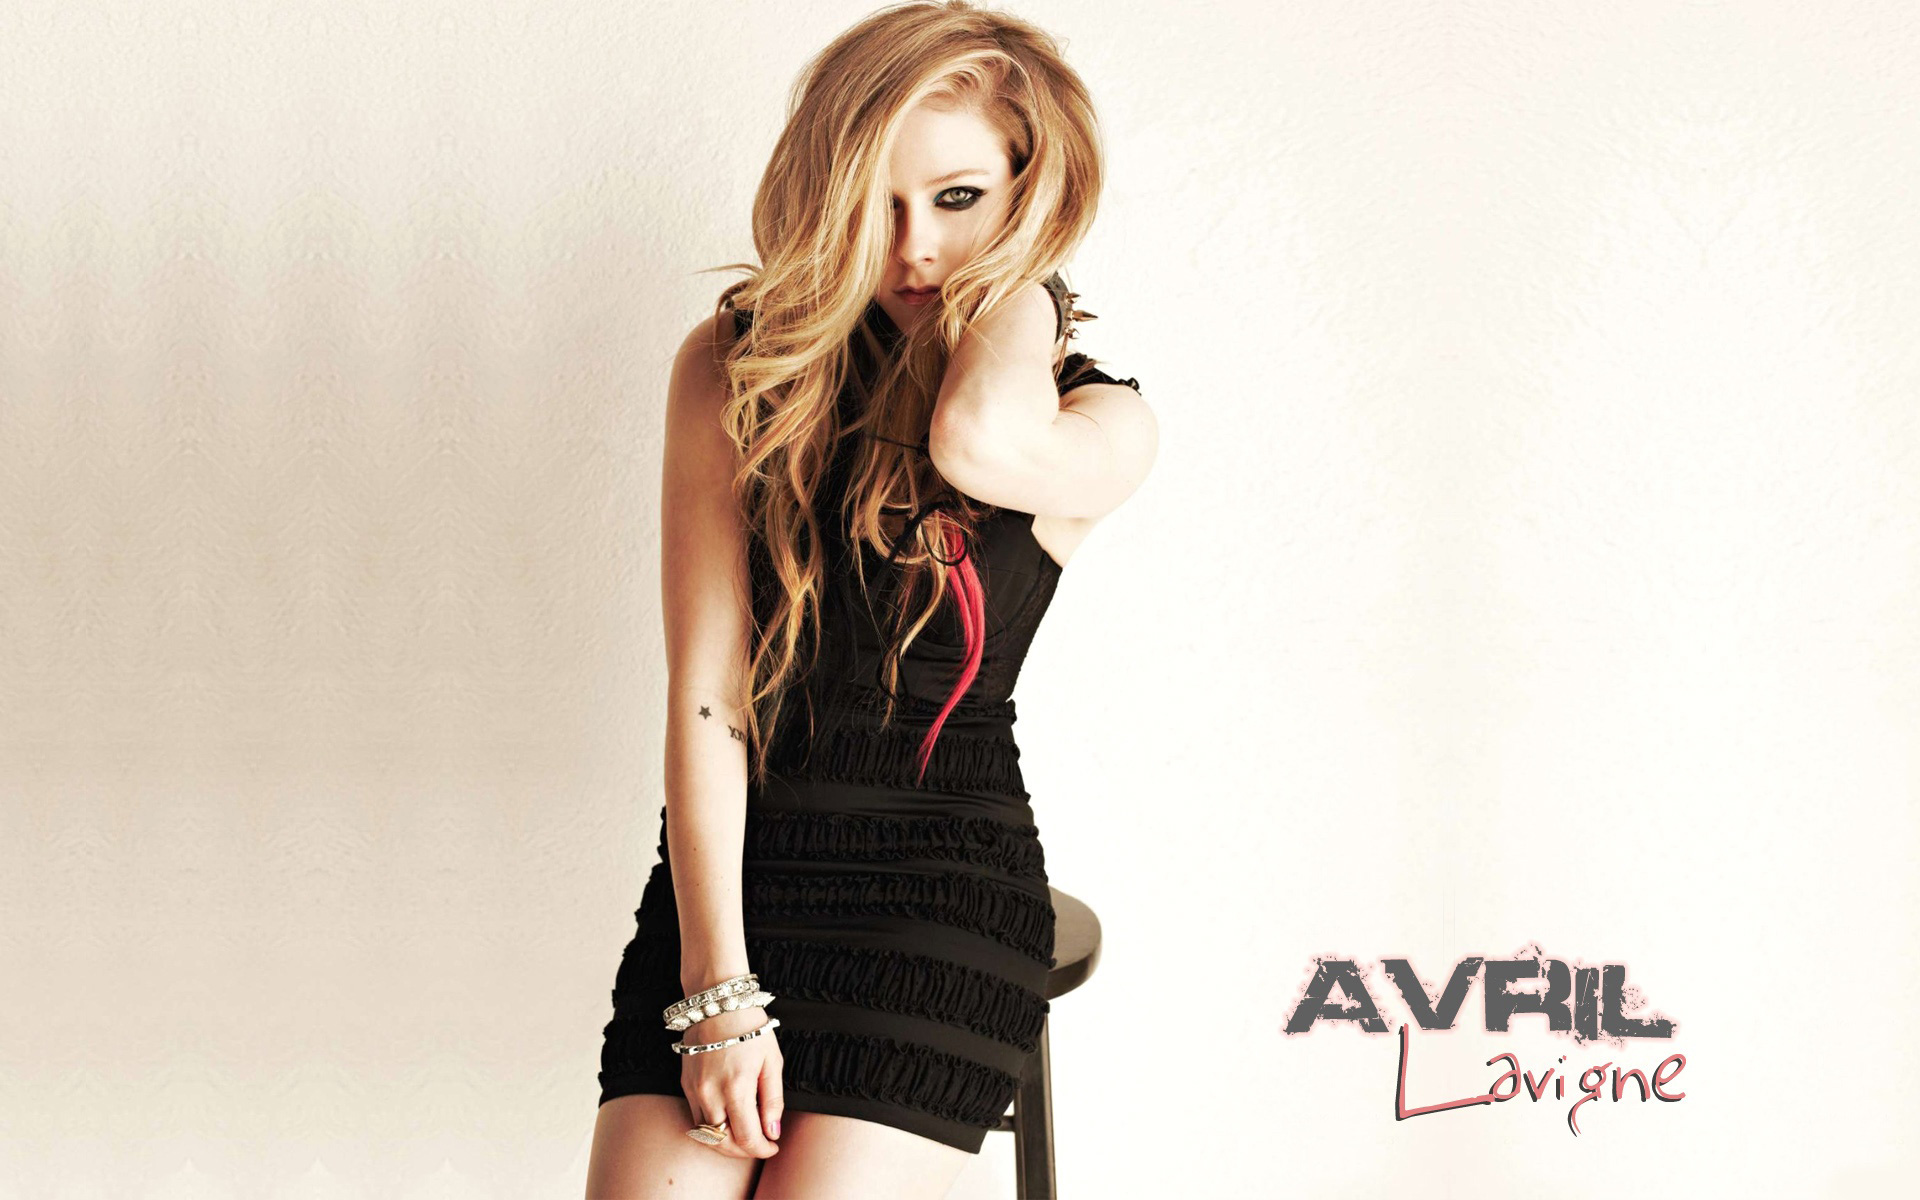 Avril Lavigne 46 wallpaper